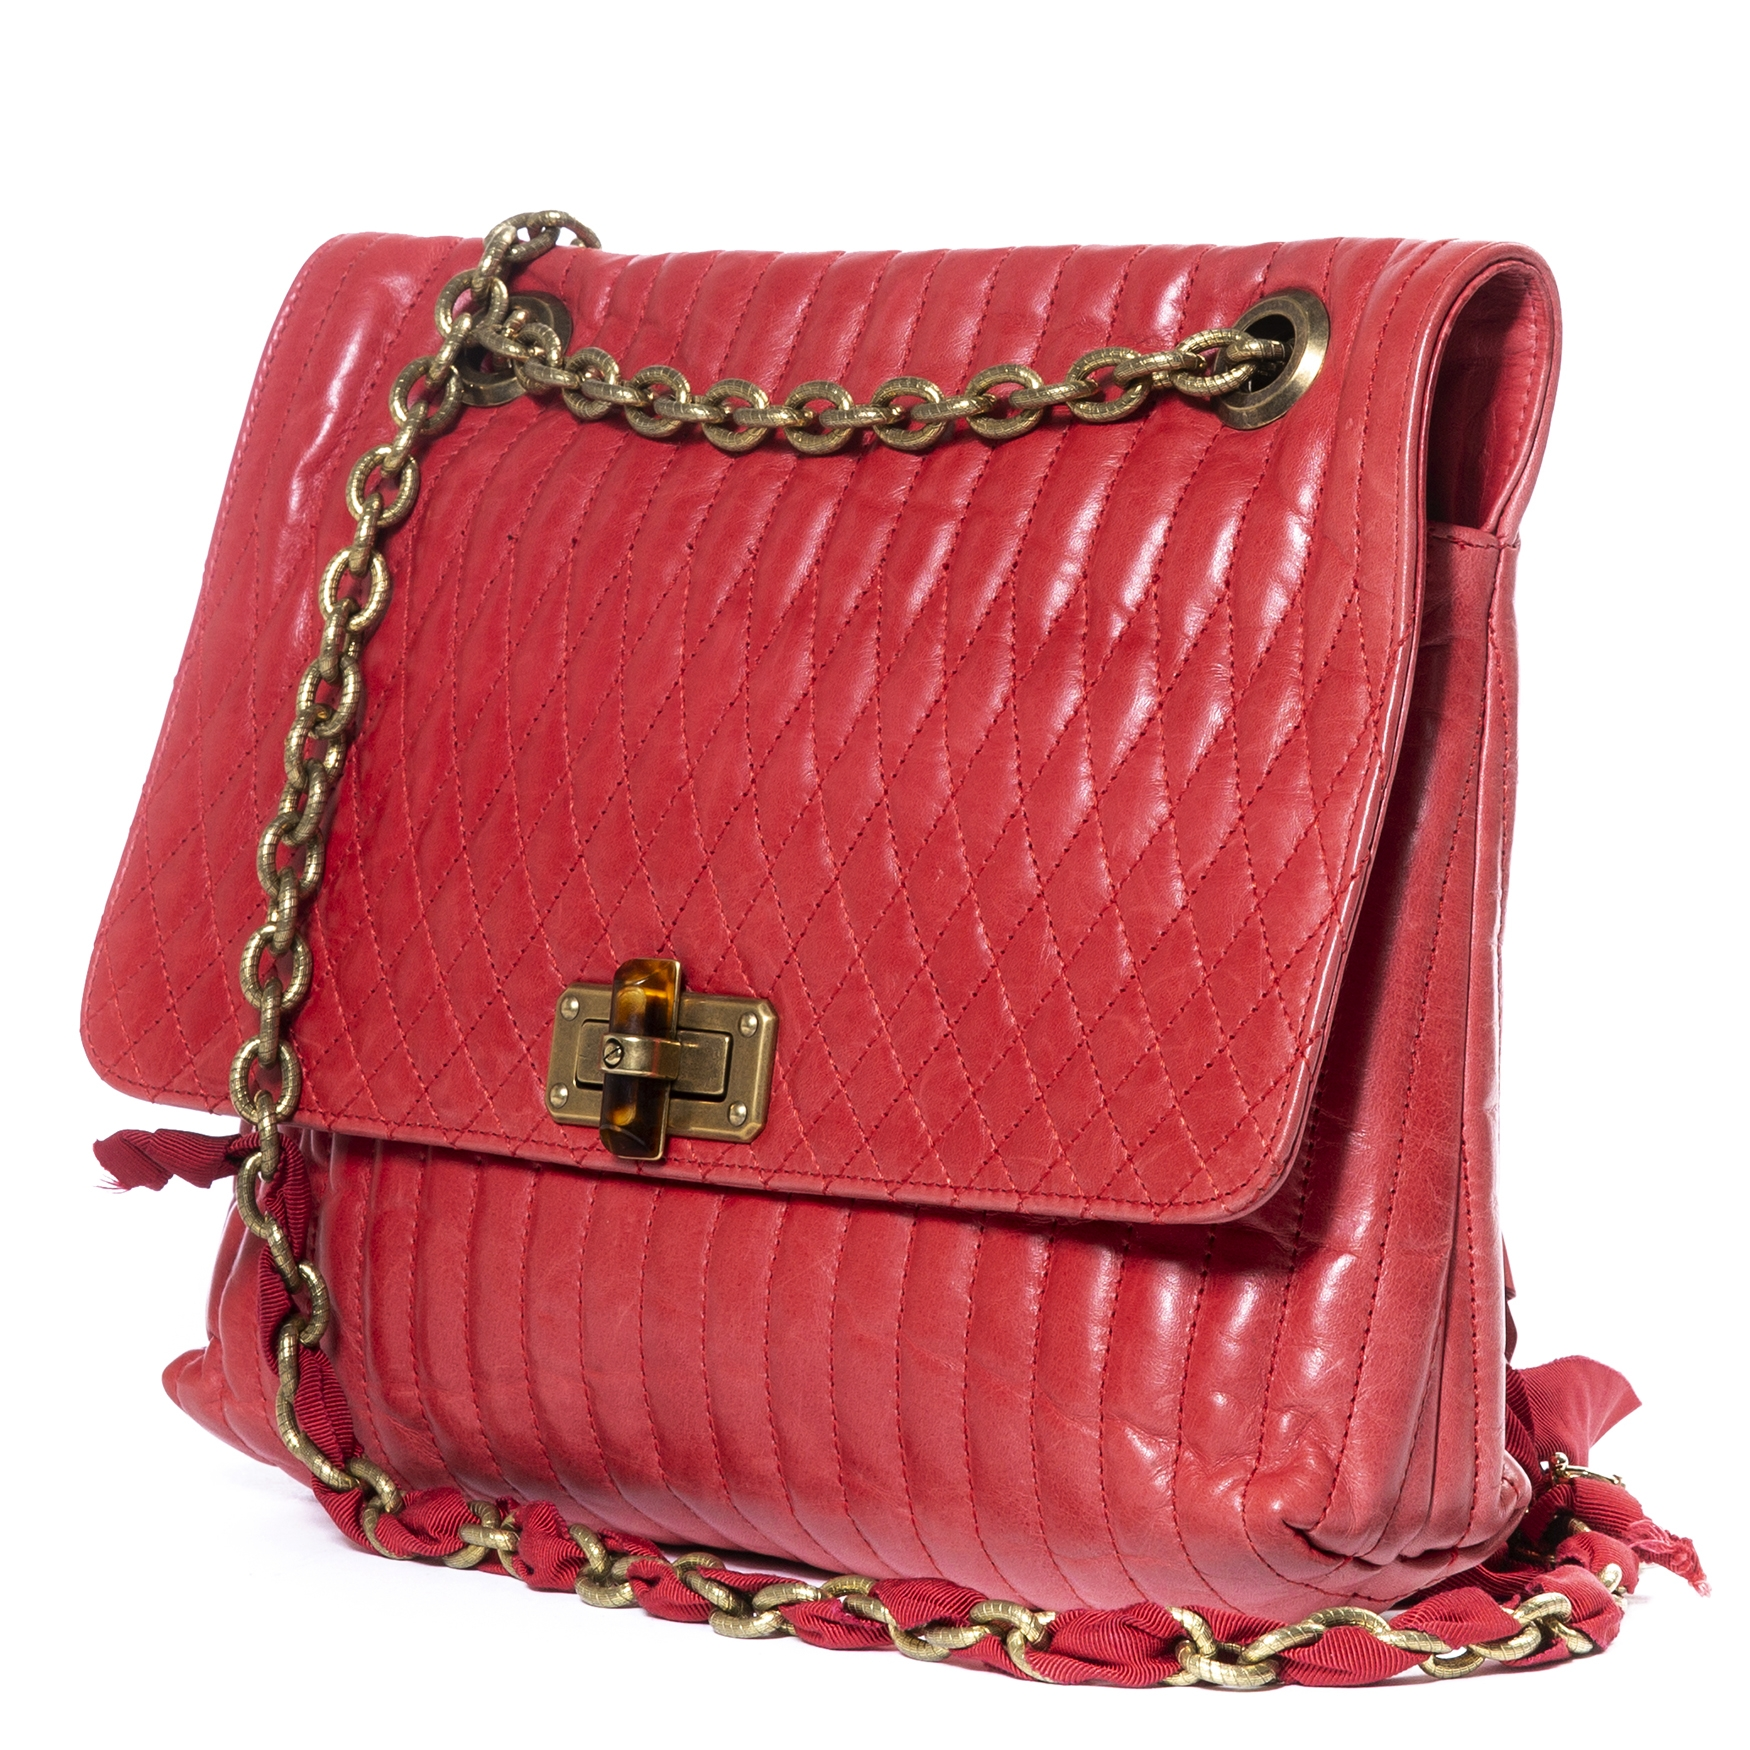 Lanvin Happy Red Medium Shoulder Bag te koop bij Labellov